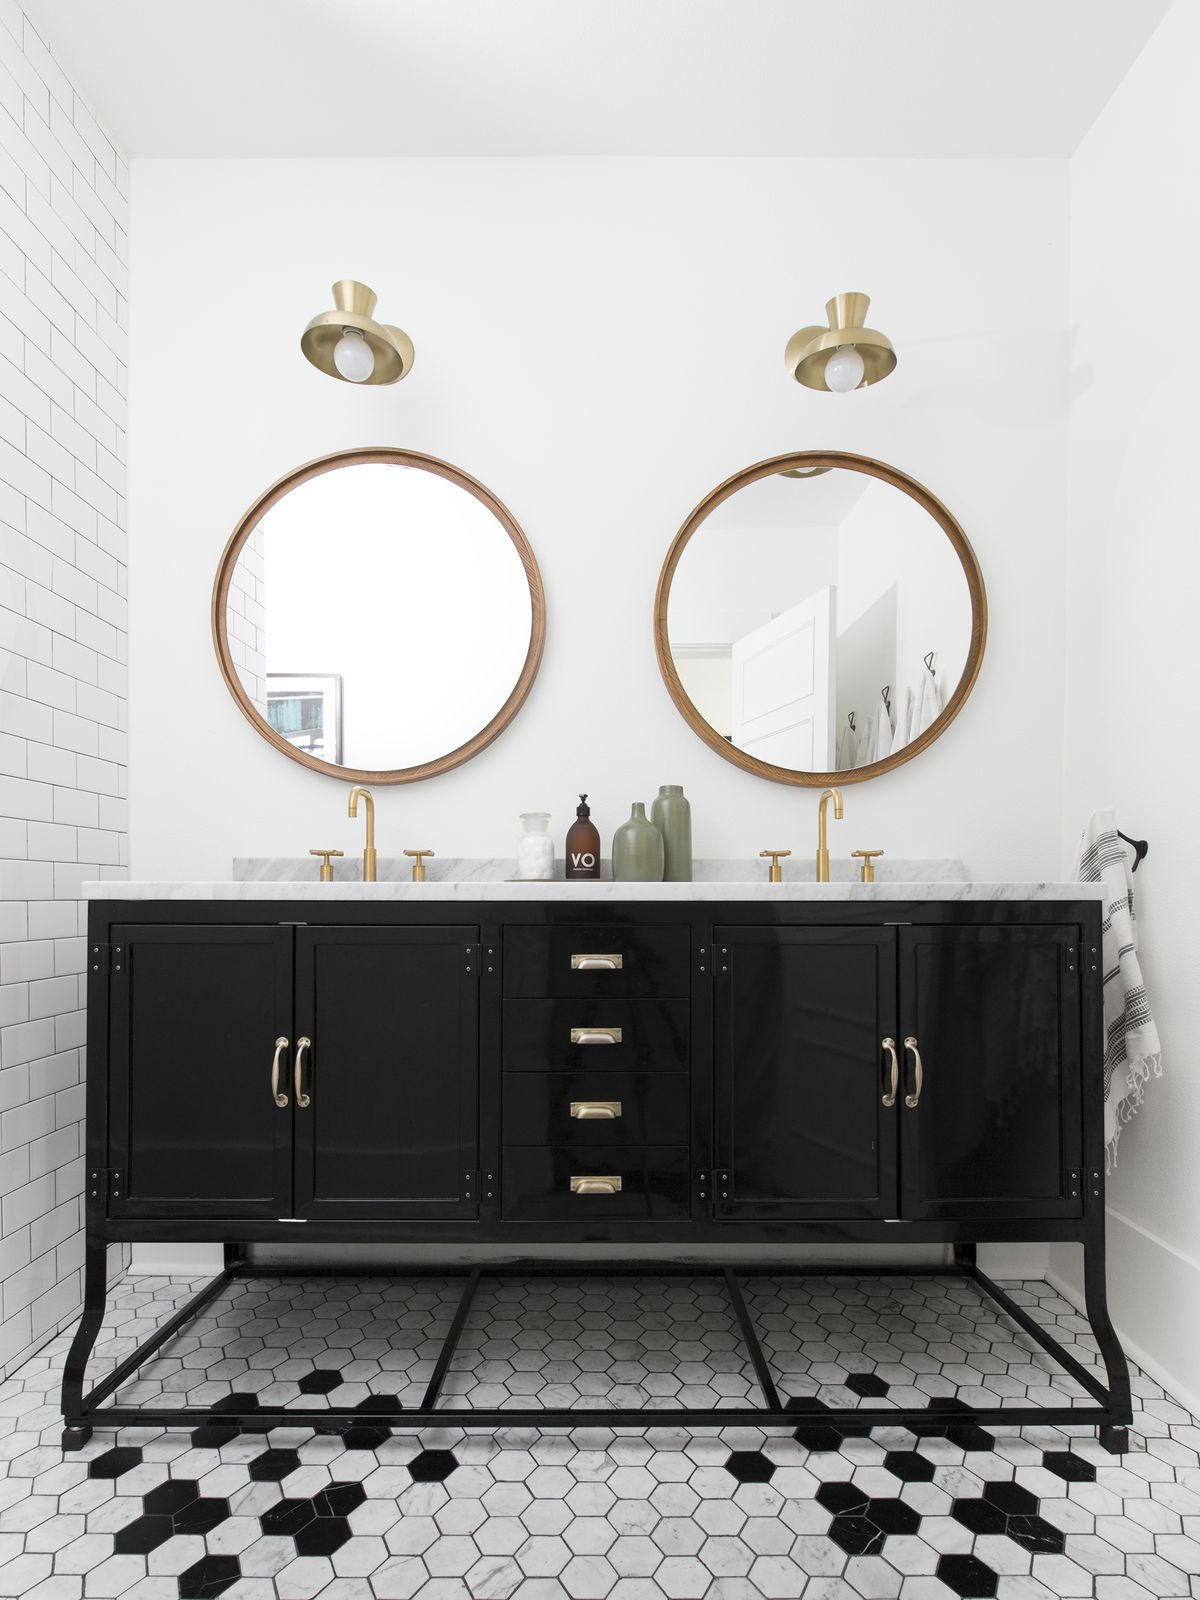 A bathroom. There is a black vanity. Above the vanity hangs two mirrors. The floor is covered in black and white tiles. The walls are painted white and one wall has white tiles. There are brass light fixtures.